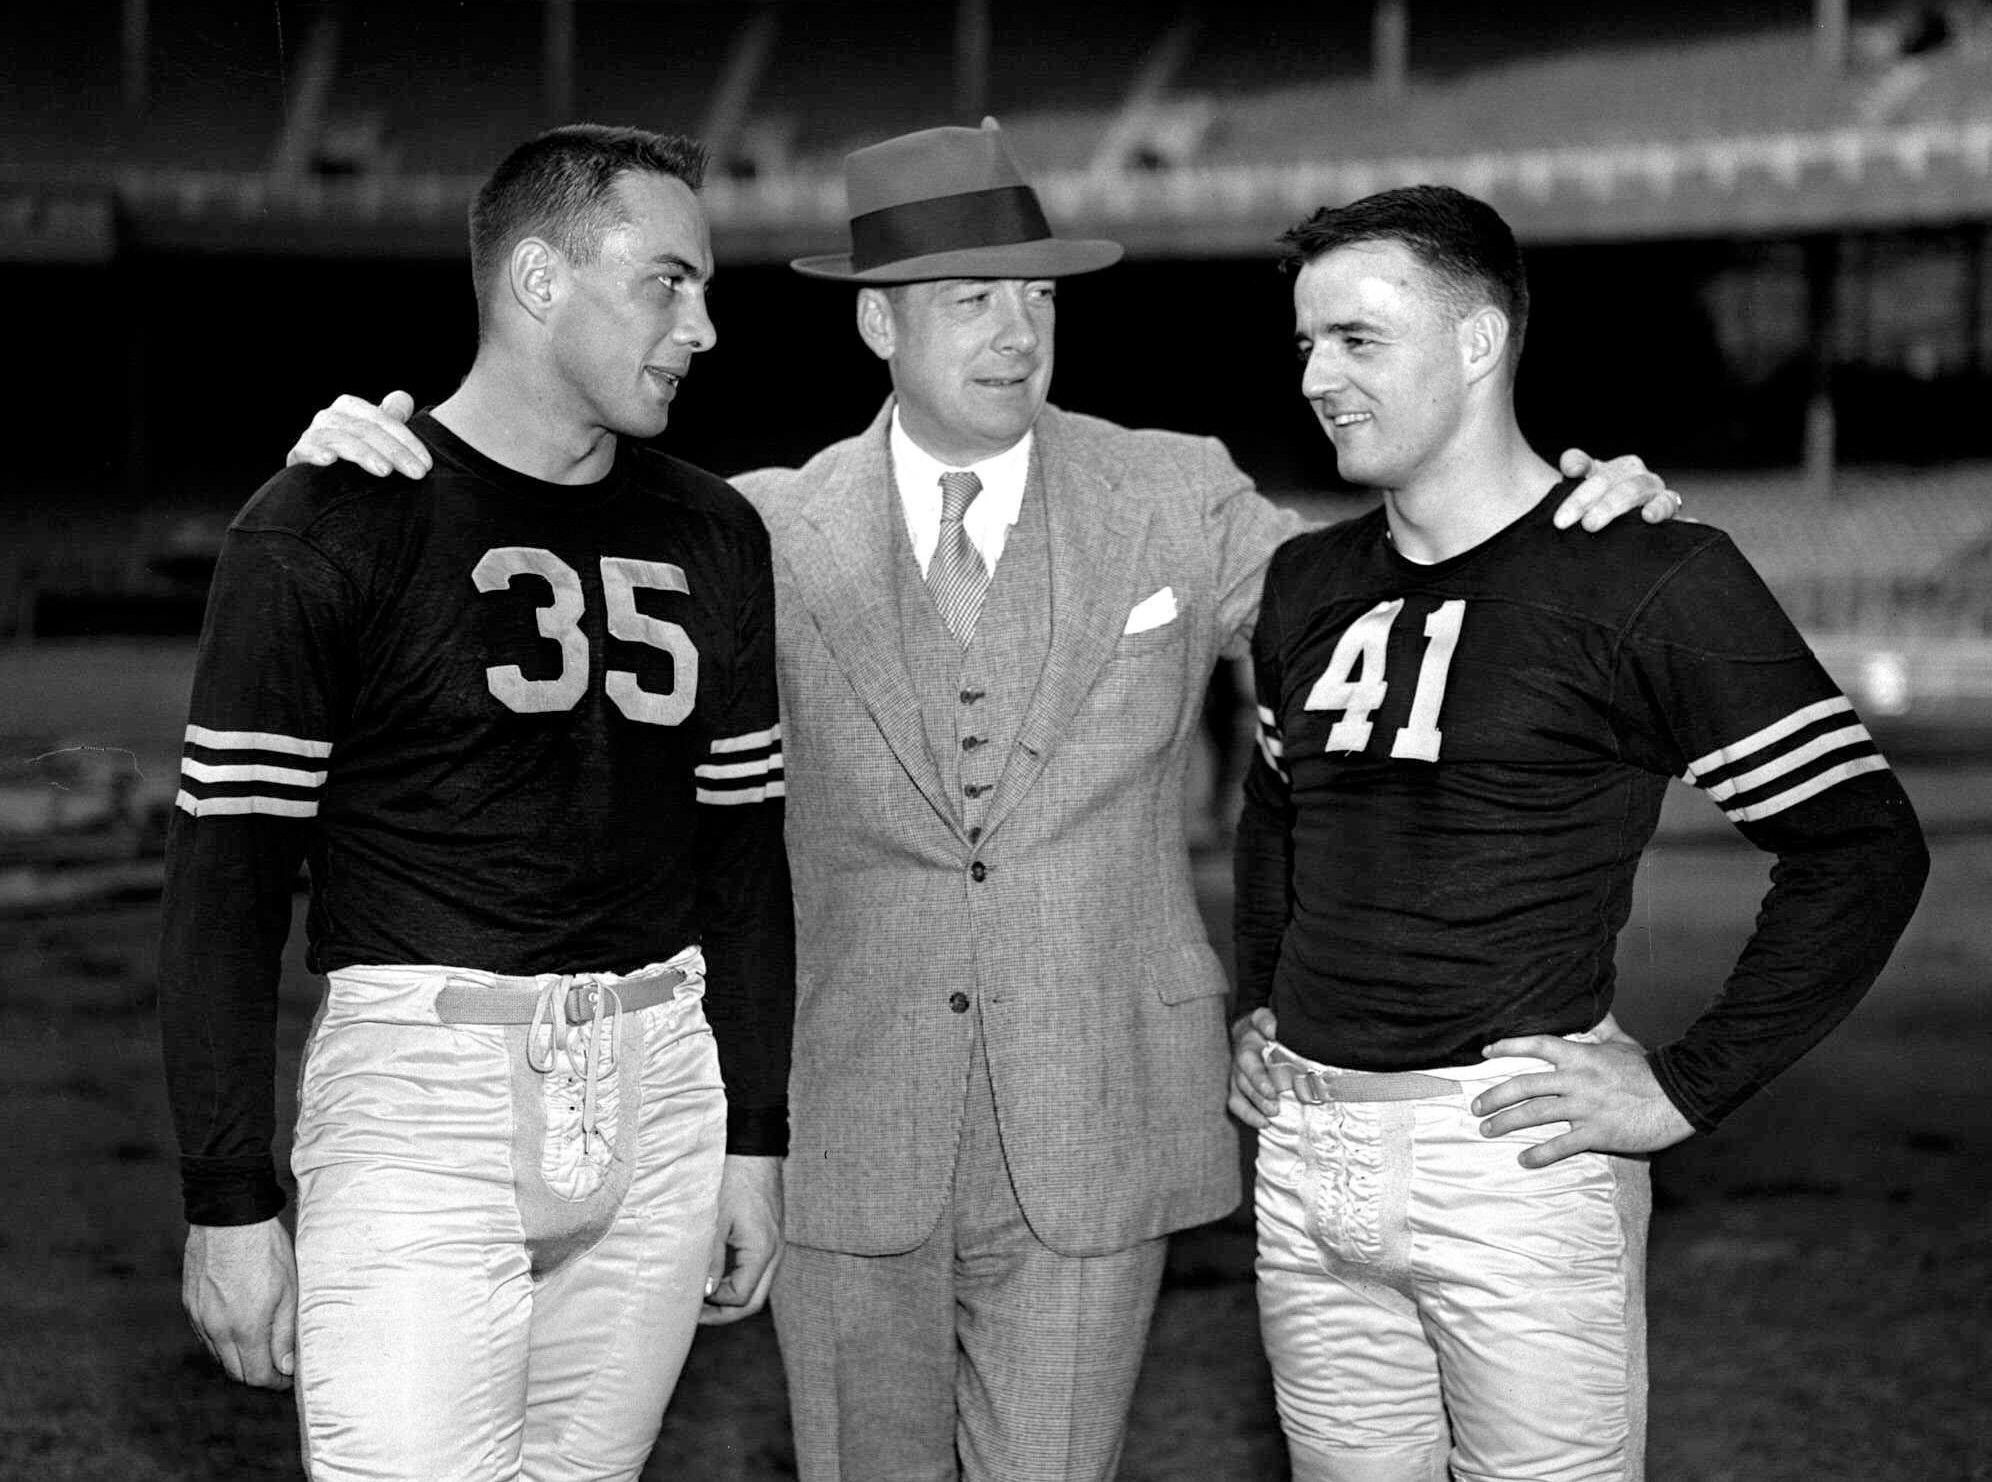 FILE -  In this Oct. 25, 1946, file photo, Army football coach Earl Blaik, center, stands with his co-captains Felix Blanchard, left, and Glenn Davis, at the Polo Grounds, in New York. Blanchard and Davis won the first Heisman Trophies in Army football hi